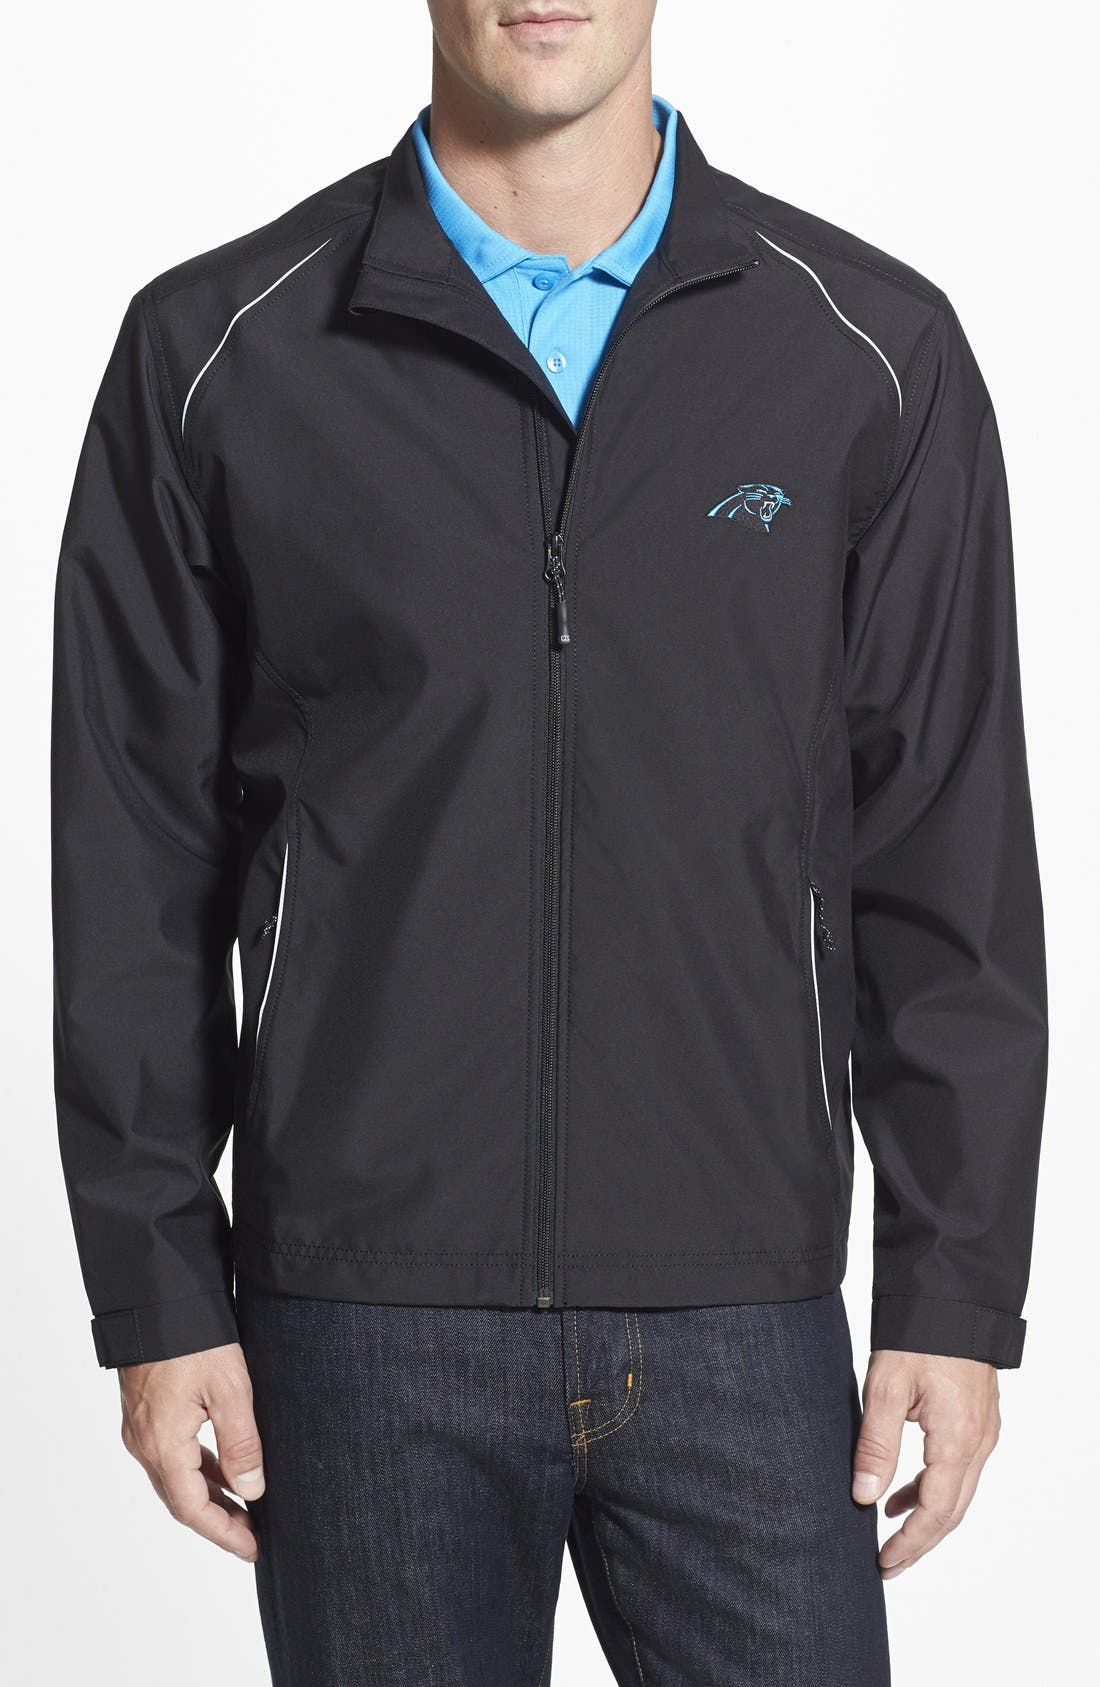 Carolina Panthers - Beacon WeatherTec Wind & Water Resistant Jacket,                             Main thumbnail 1, color,                             001